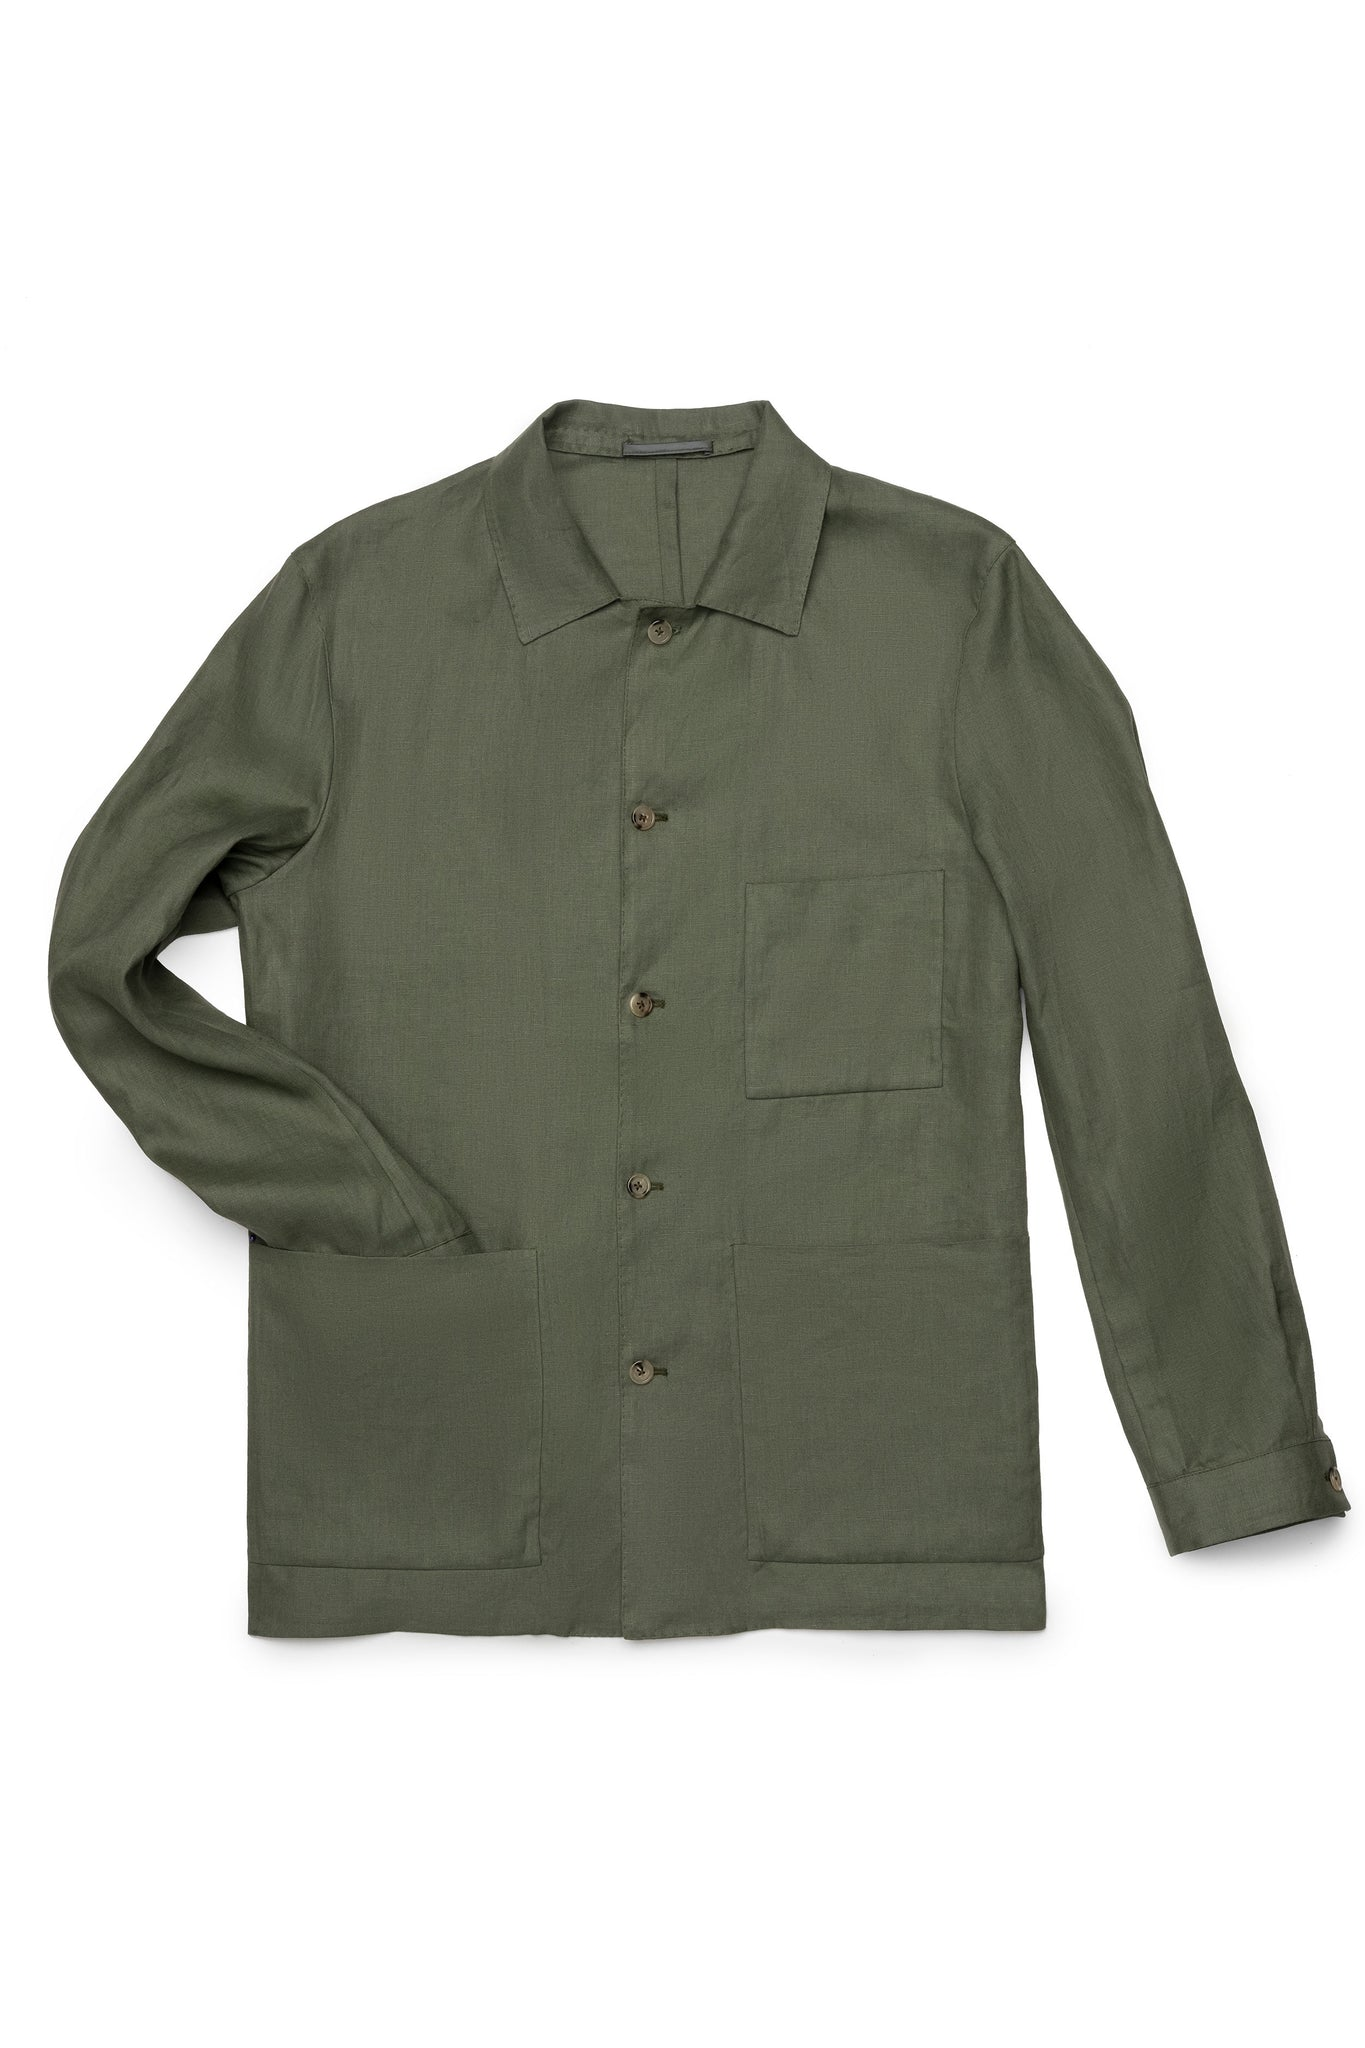 P Johnson Army Green Linen Shirt Jacket